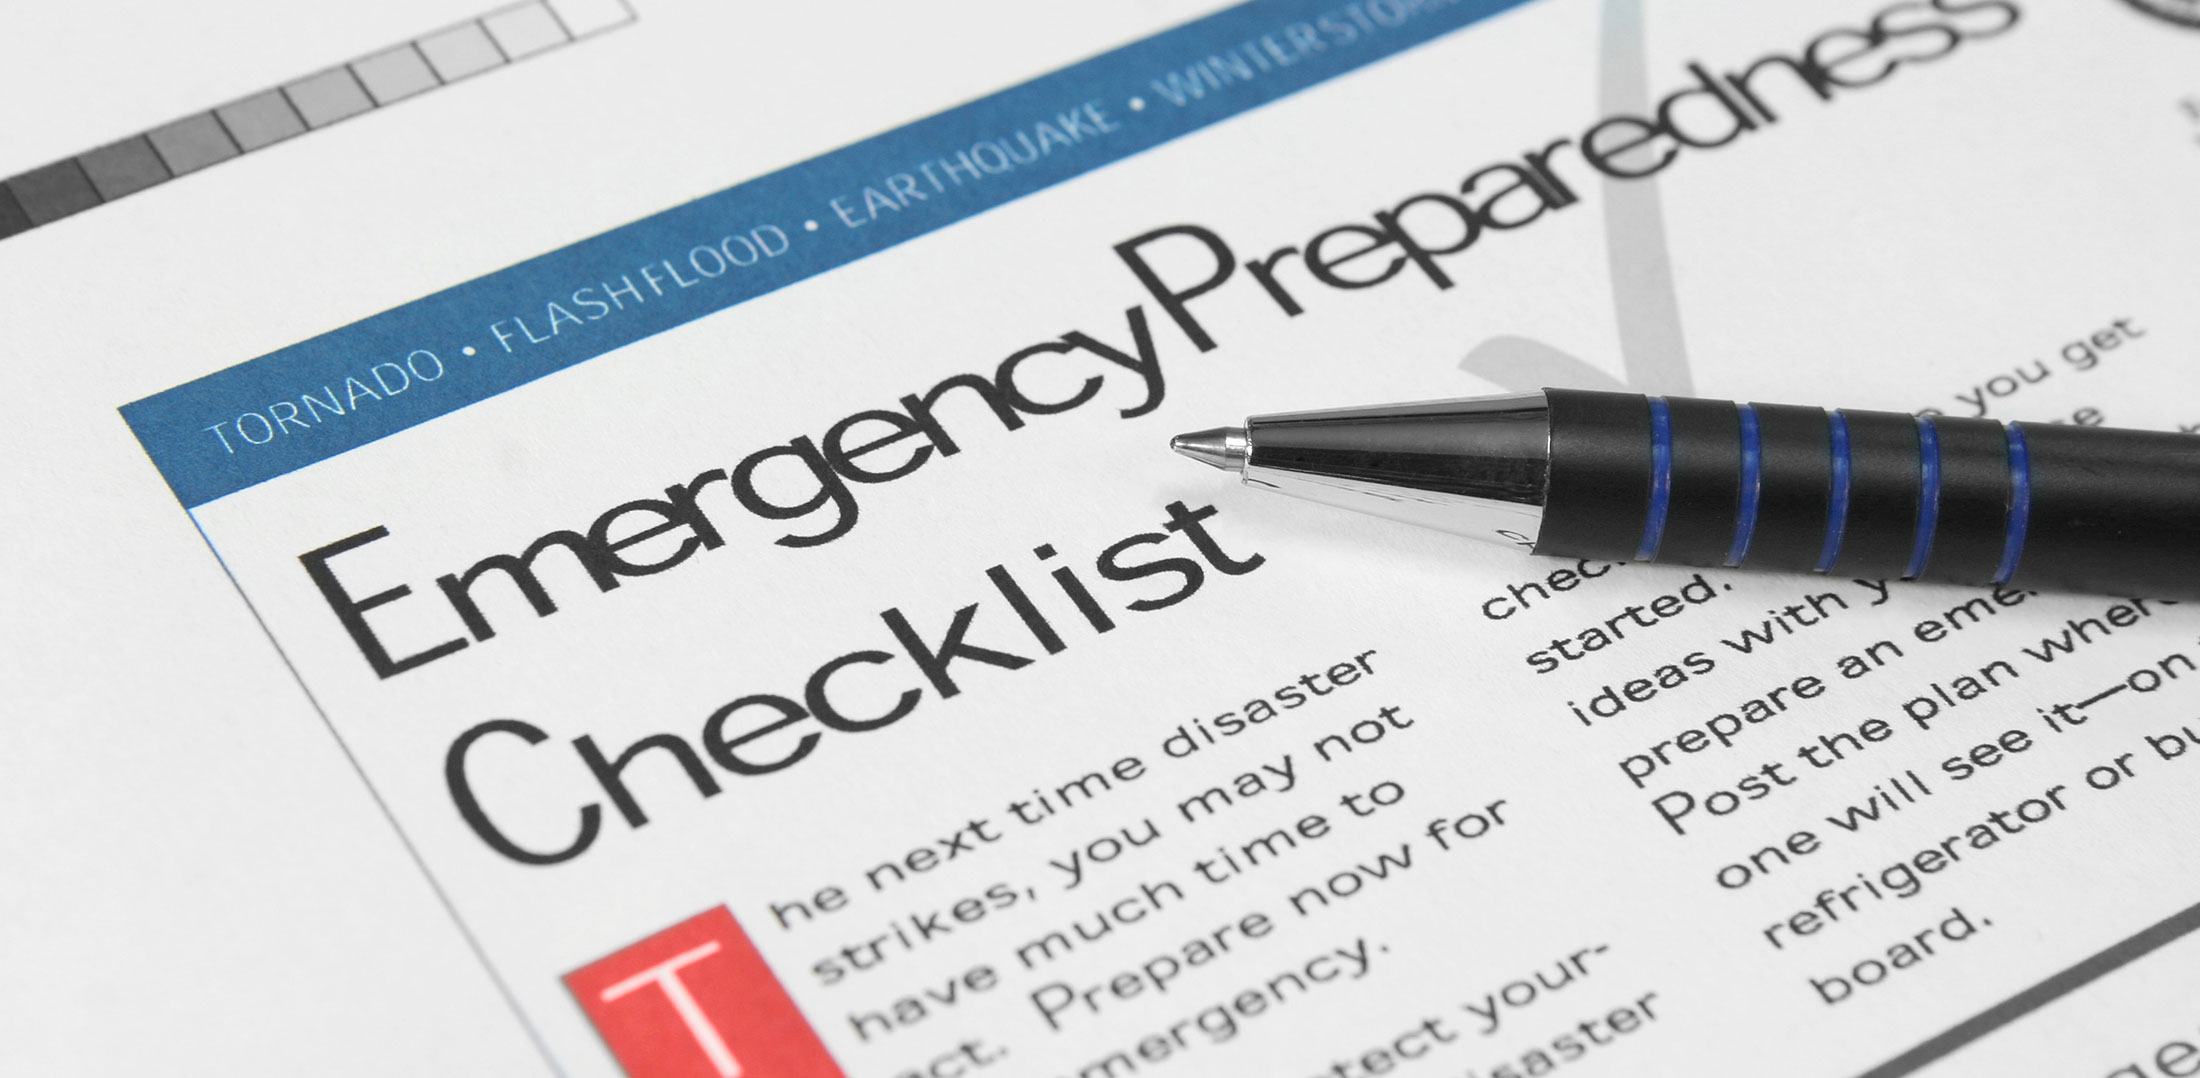 Emergency disaster plan checklist from InterCoastal Public Adjusters